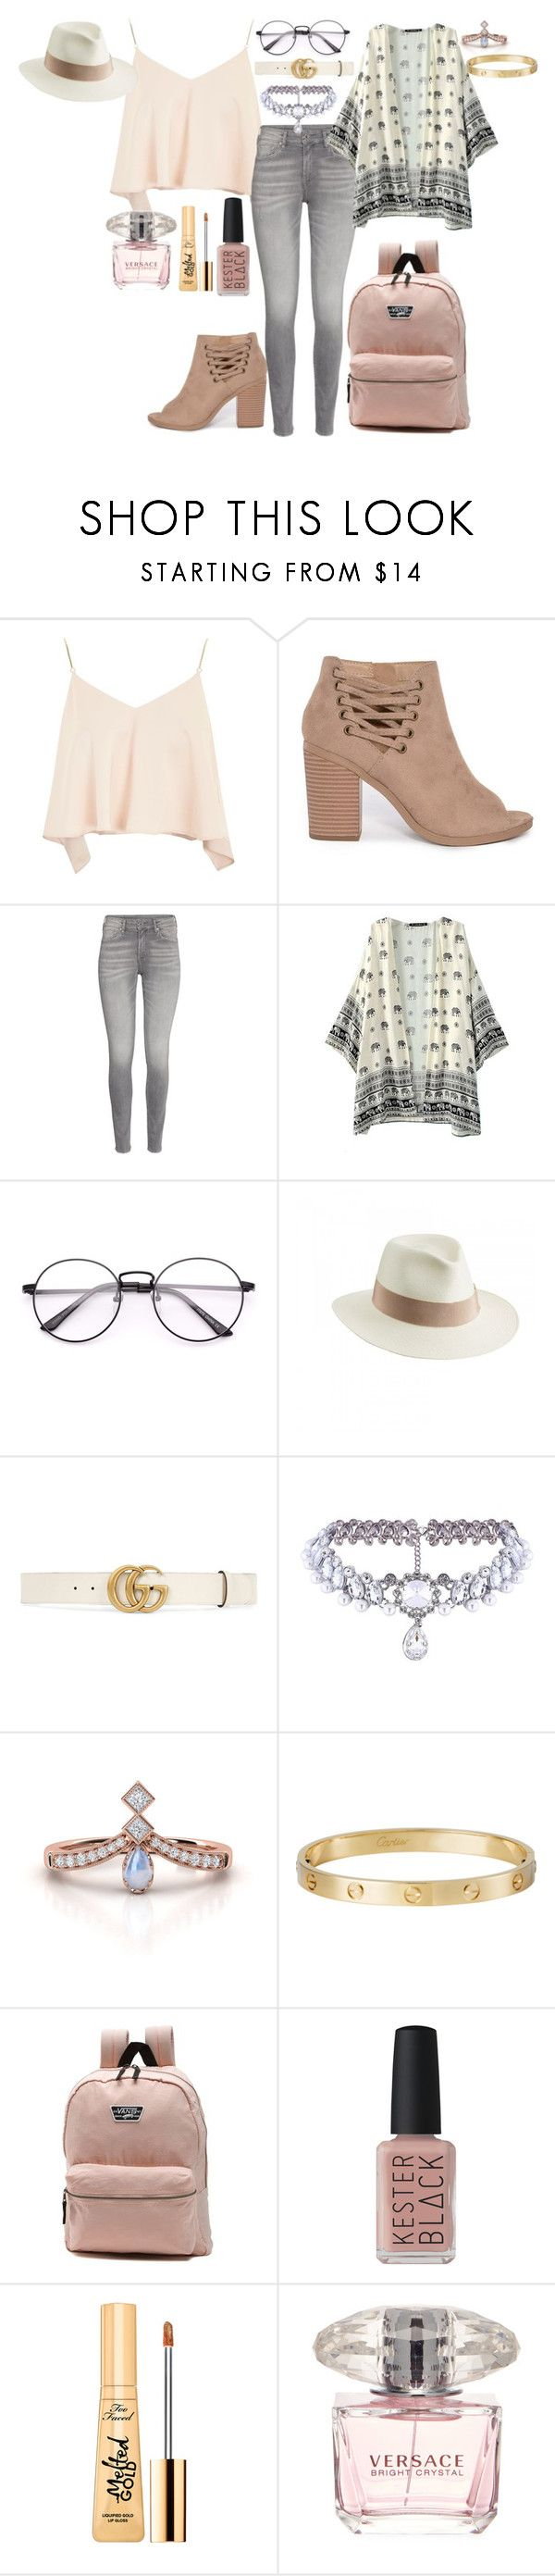 """""""Untitled #103"""" by amor-de-pandicornios on Polyvore featuring Topshop, Helen Kaminski, Gucci, WithChic, Cartier, Vans, Kester Black, Too Faced Cosmetics and Versace"""